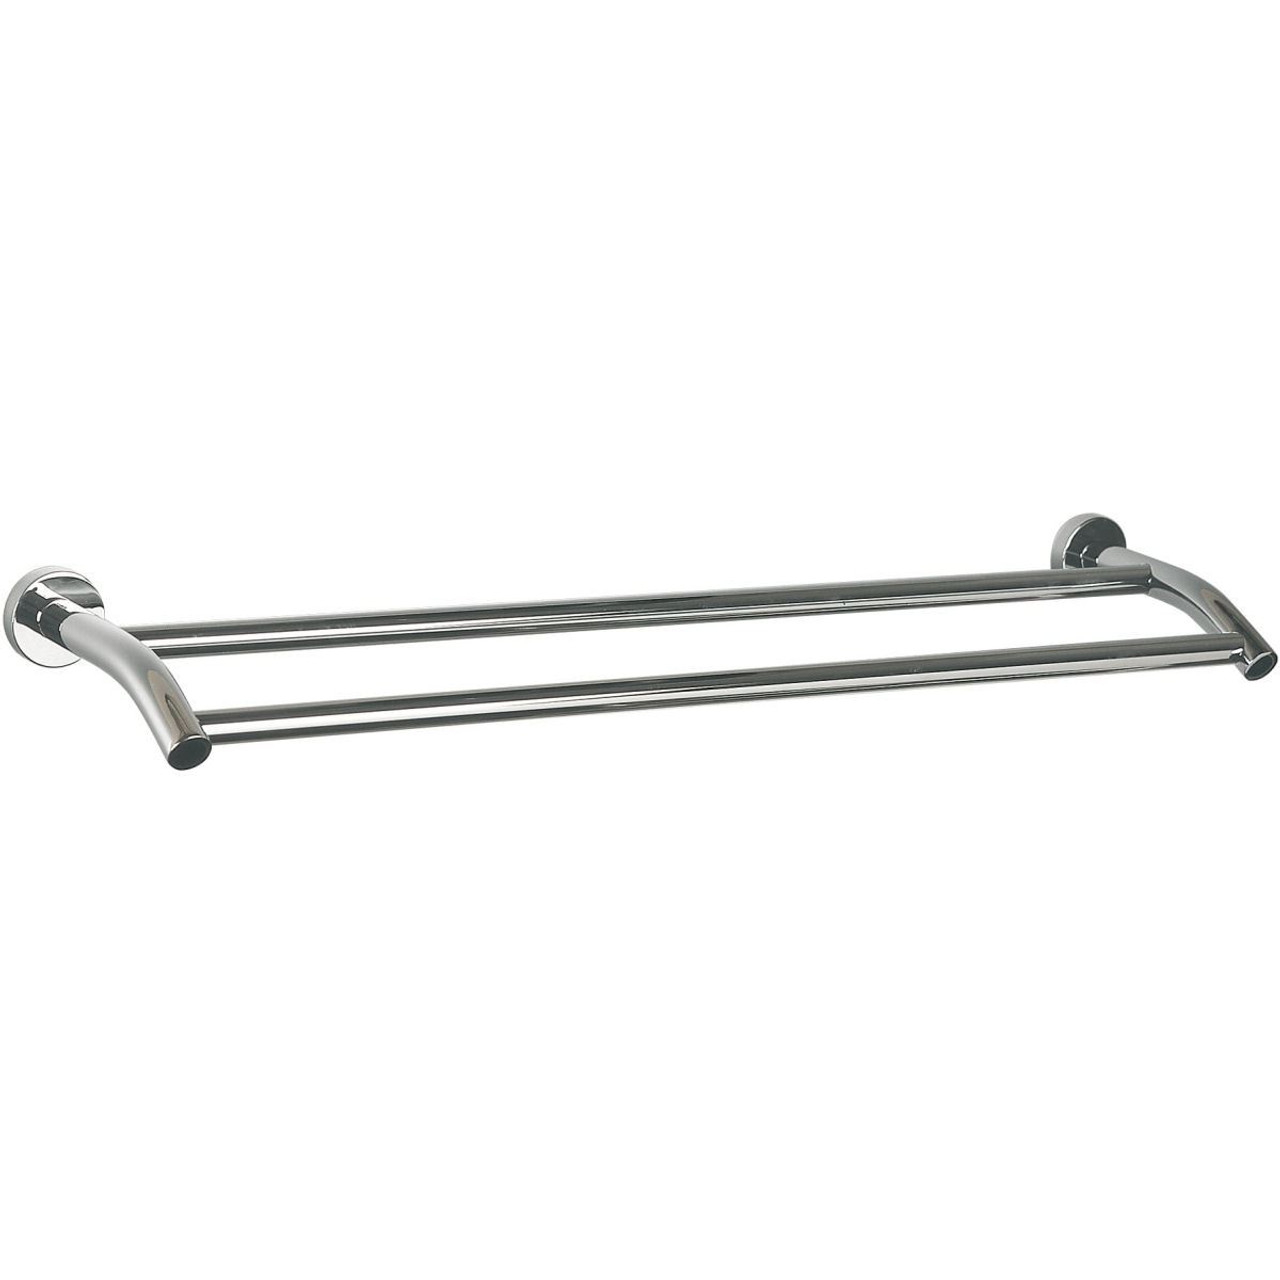 Miller Bond Towel Rail 873464